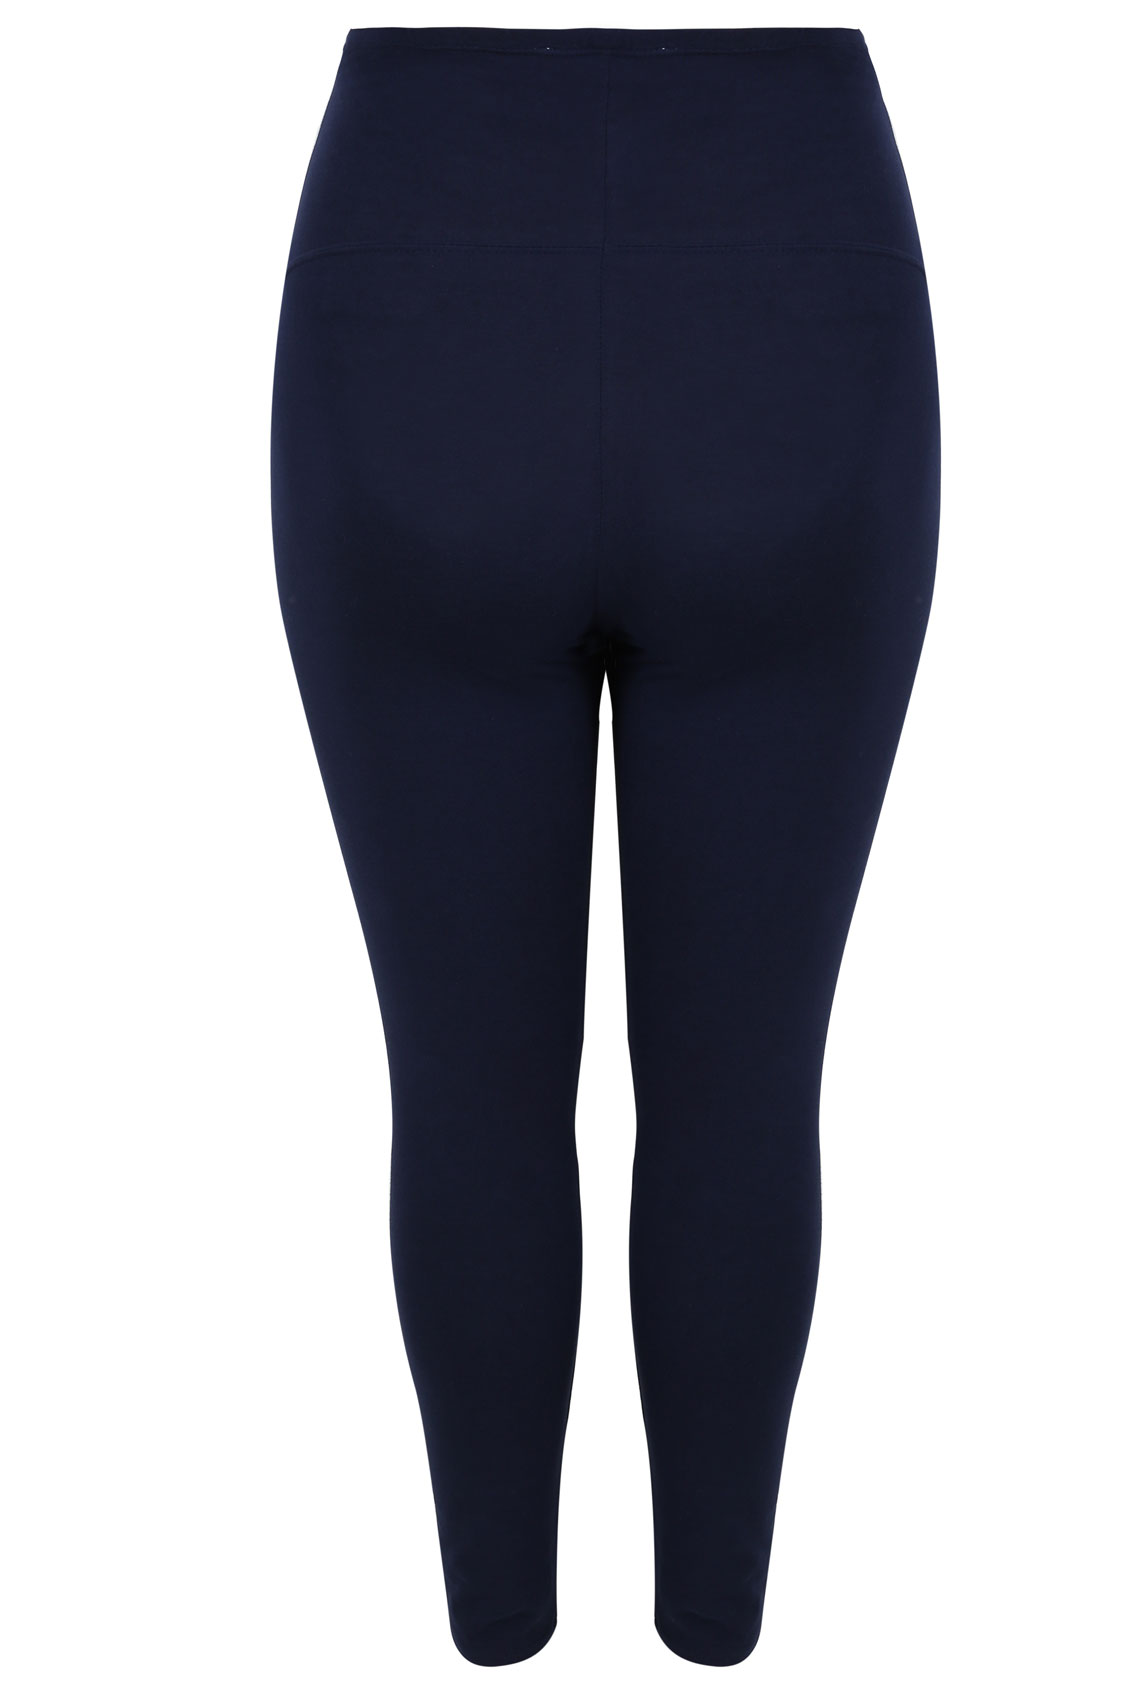 BUMP IT UP MATERNITY Navy Cotton Essential Leggings With ...